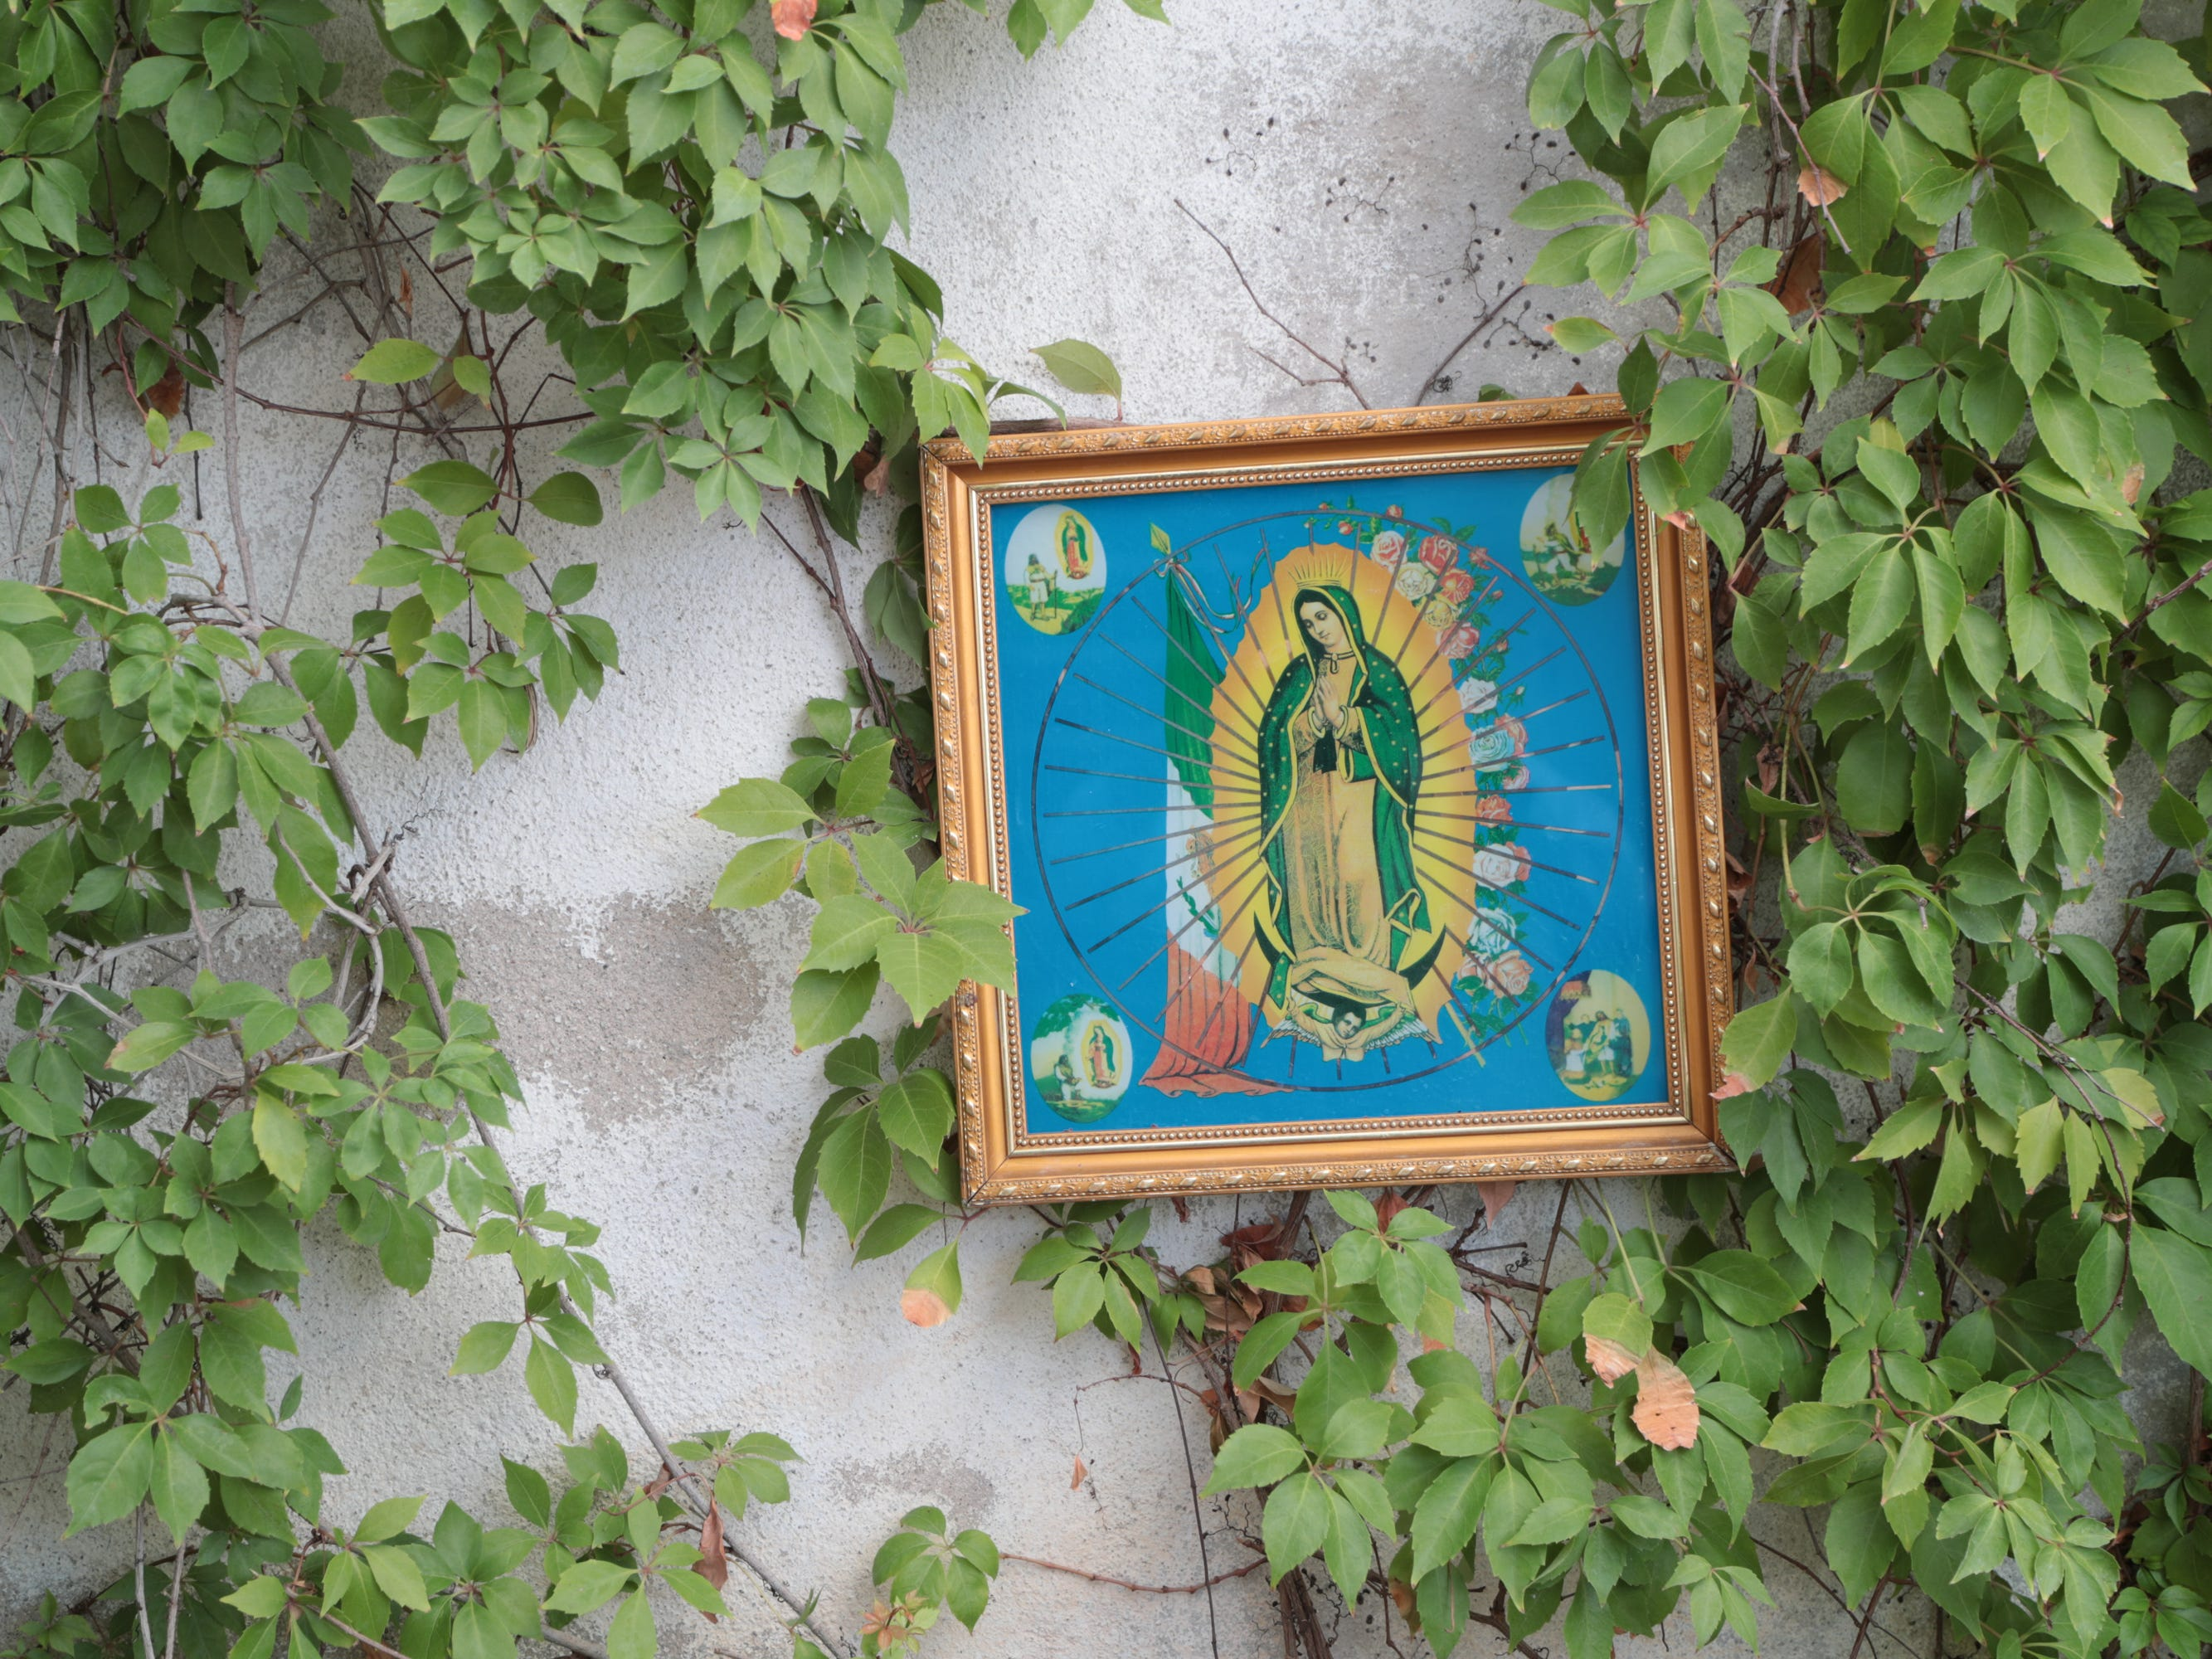 A painting of the Virgin of Guadalupe hangs in the Arámbula family garden in the neighborhood Colonia Vicente Guerrero in Mexicali.